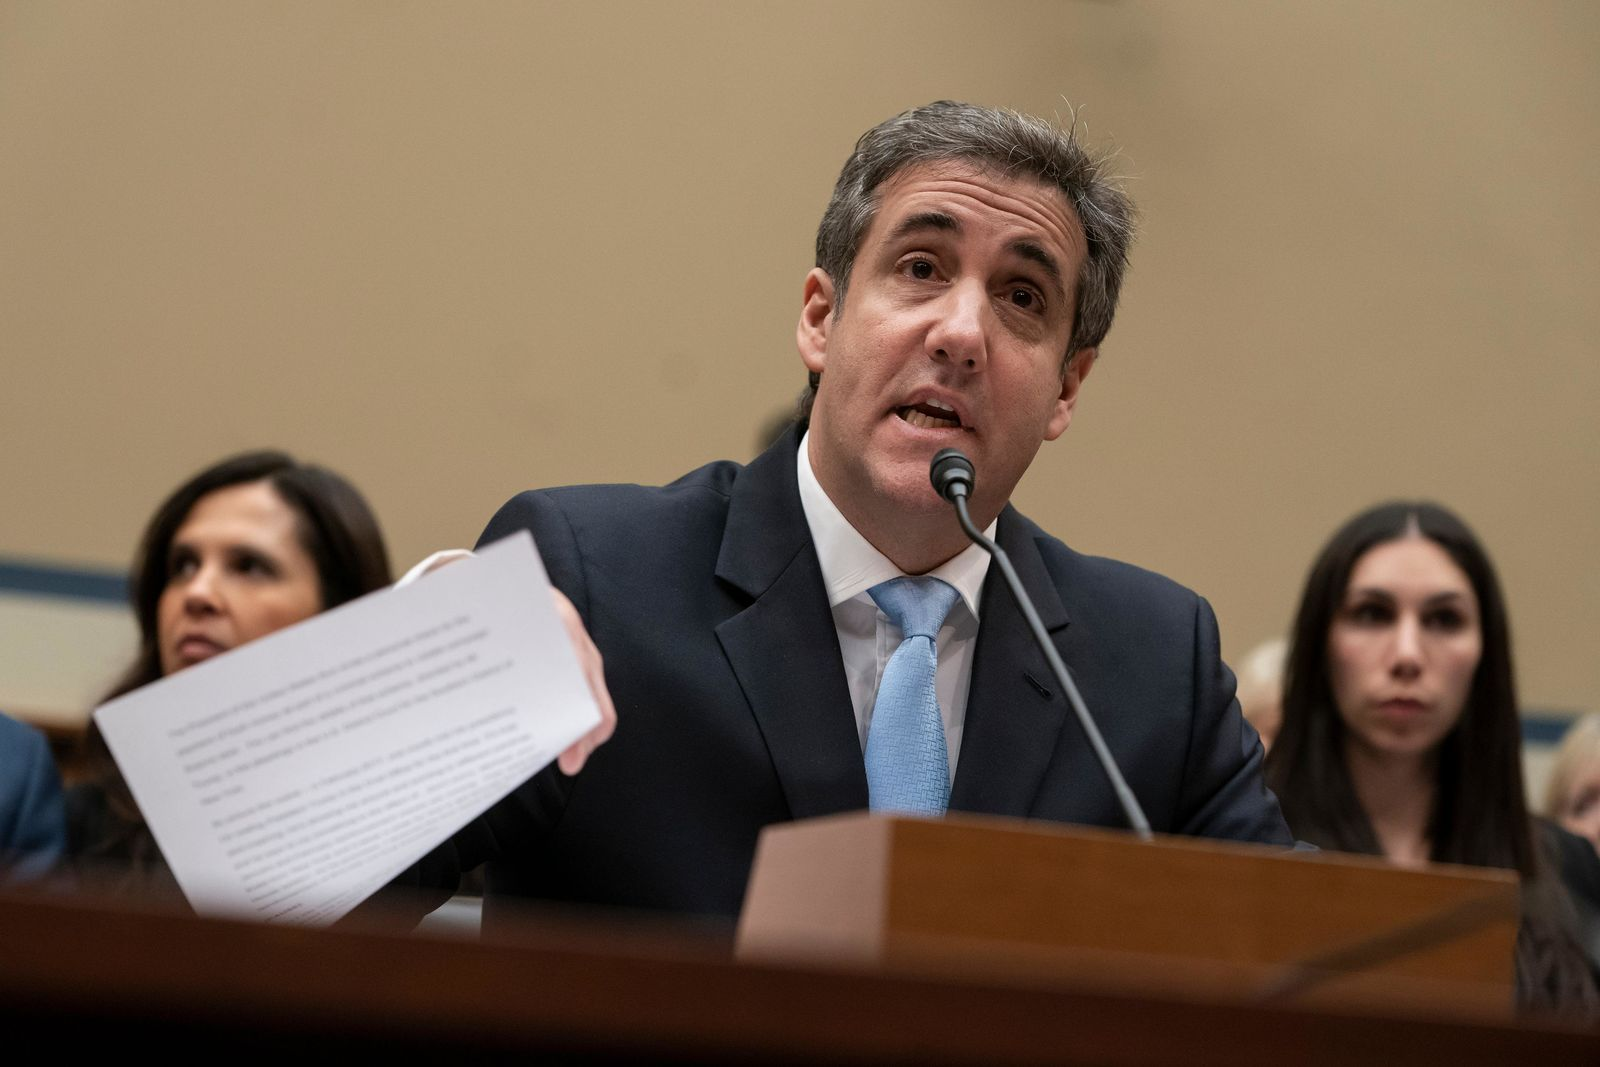 FILE - In this Feb. 27, 2019, file photo, Michael Cohen, President Donald Trump's former personal lawyer, reads an opening statement as he testifies before the House Oversight and Reform Committee on Capitol Hill in Washington. Search warrants unsealed Thursday, Jul 18, 2019, shed new light on the president's role as his campaign scrambled to respond to media inquiries about hush money paid to two women who said they had affairs with him. The investigation involved payments Cohen helped orchestrate to porn actress Stormy Daniels and Playboy centerfold Karen McDougal. (AP Photo/J. Scott Applewhite, File)